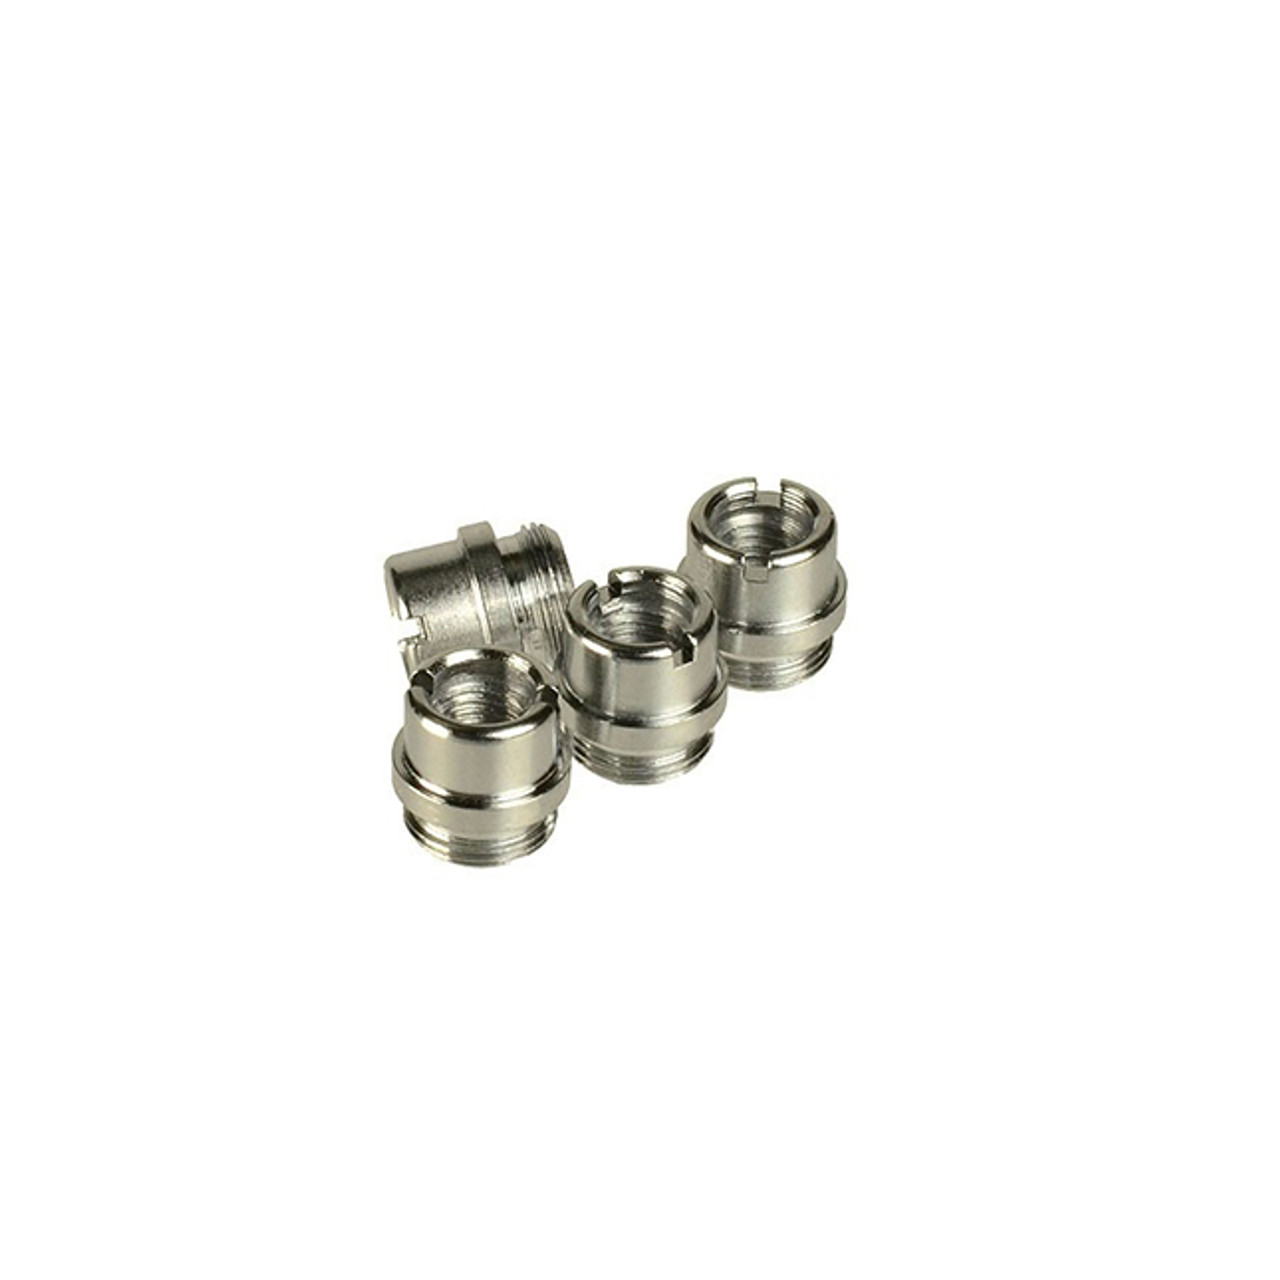 Strike Industries - 1911 Grip Screw Bushings Stainless Steel